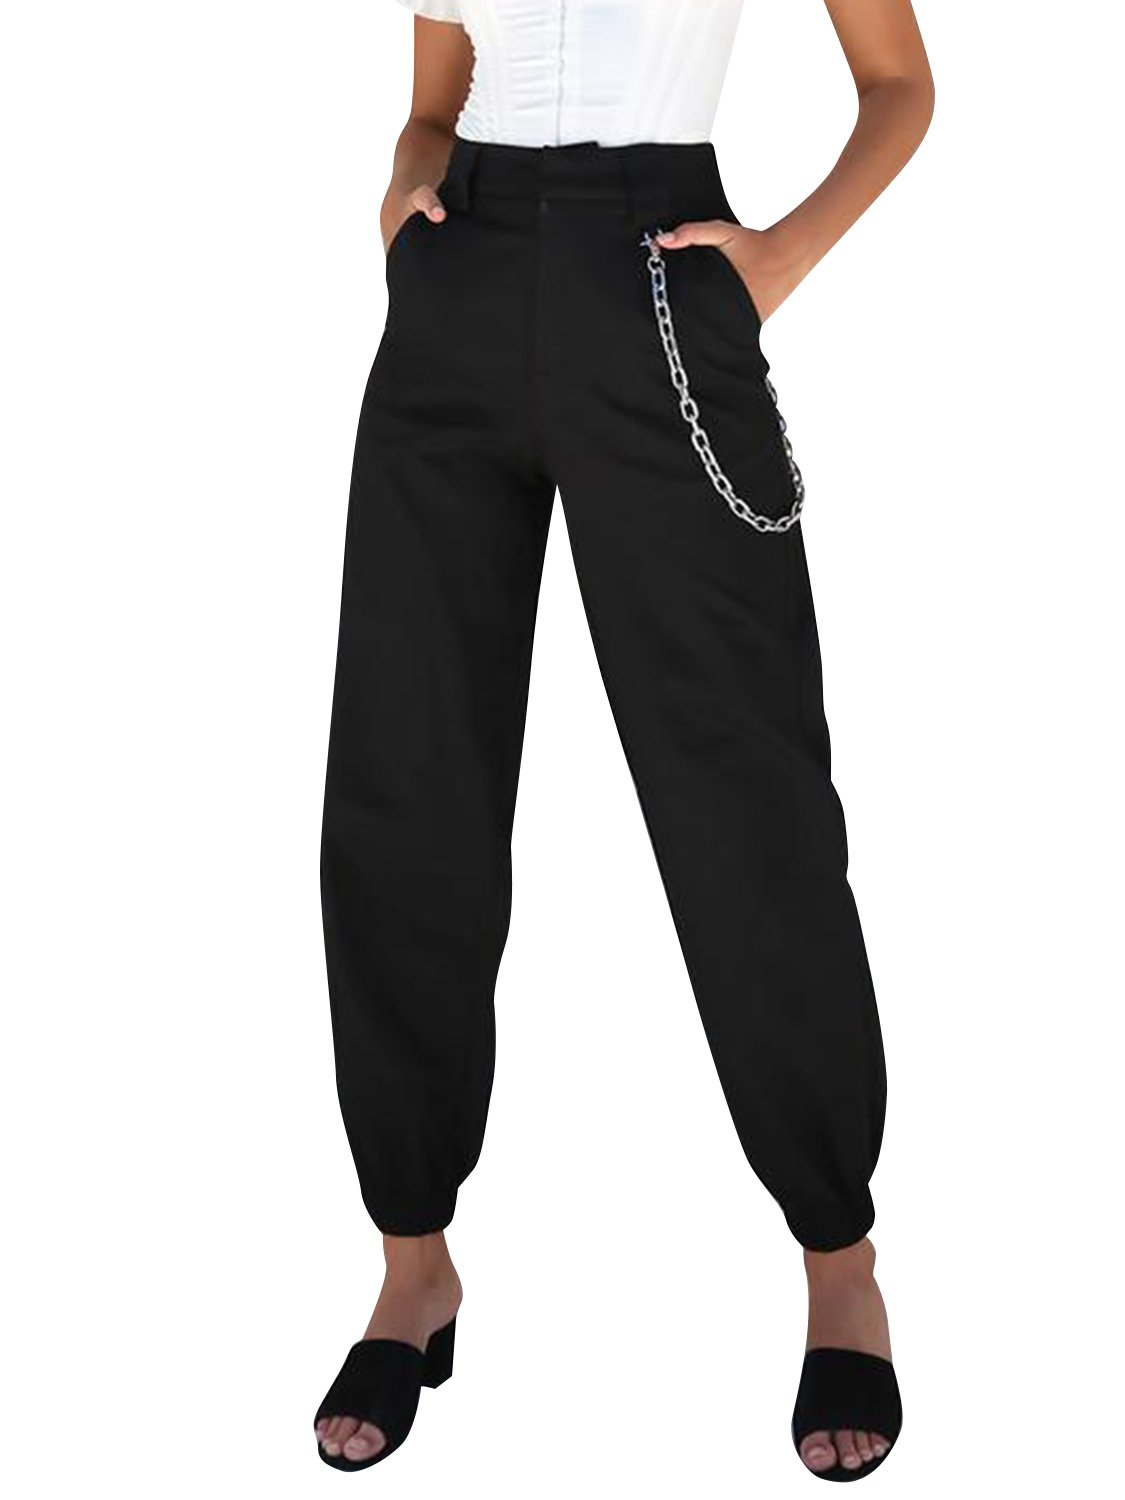 Glamaker Women's Casual Relaxed Fit High Waist Crogo Pants Jogger Trousers Harem Pants Plus Size Black